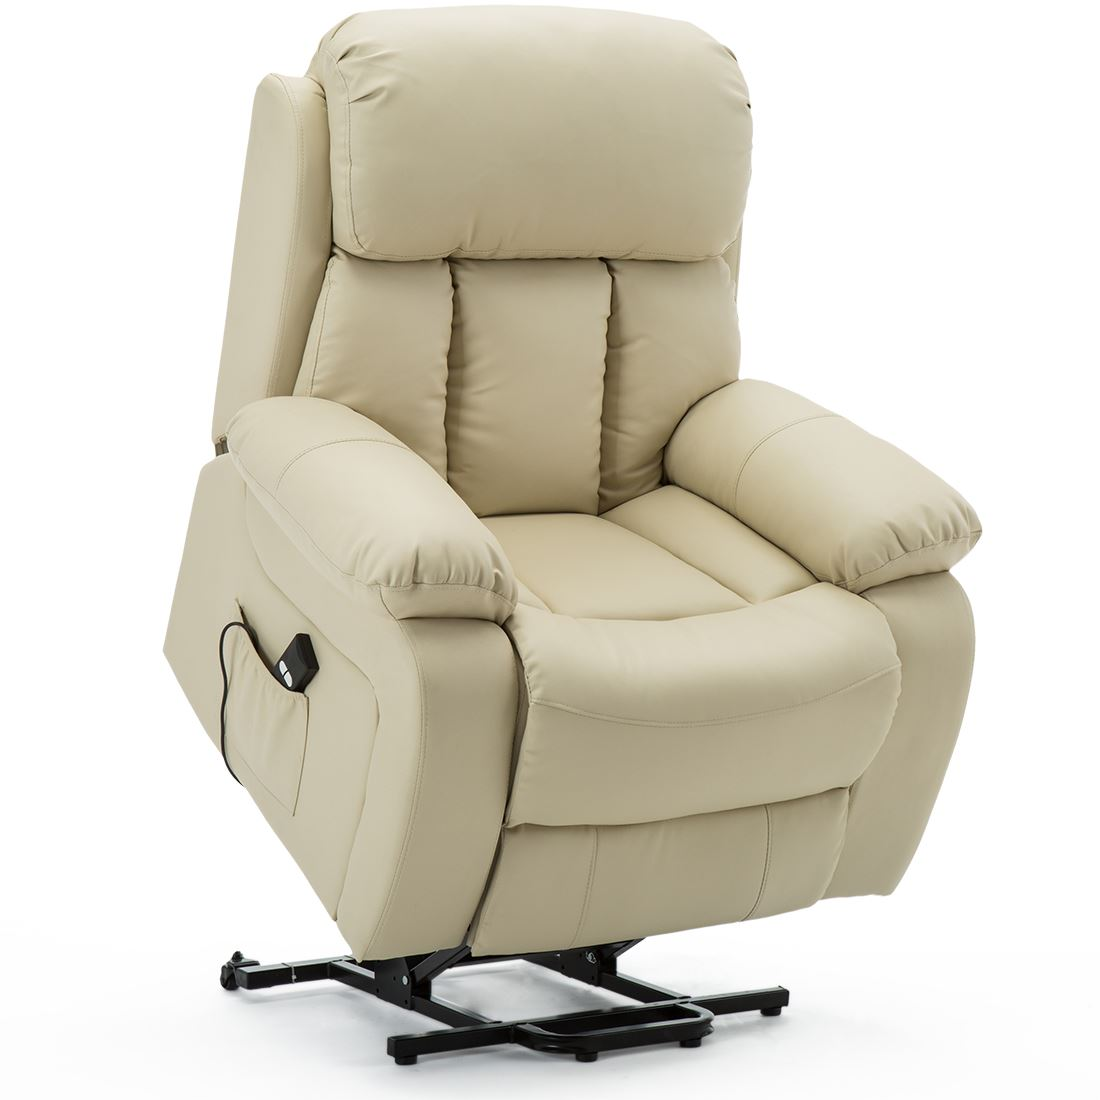 CHESTER-ELECTRIC-RISE-LEATHER-RECLINER-POWER-ARMCHAIR-HEATED-MASSAGE-SOFA-CHAIR thumbnail 24